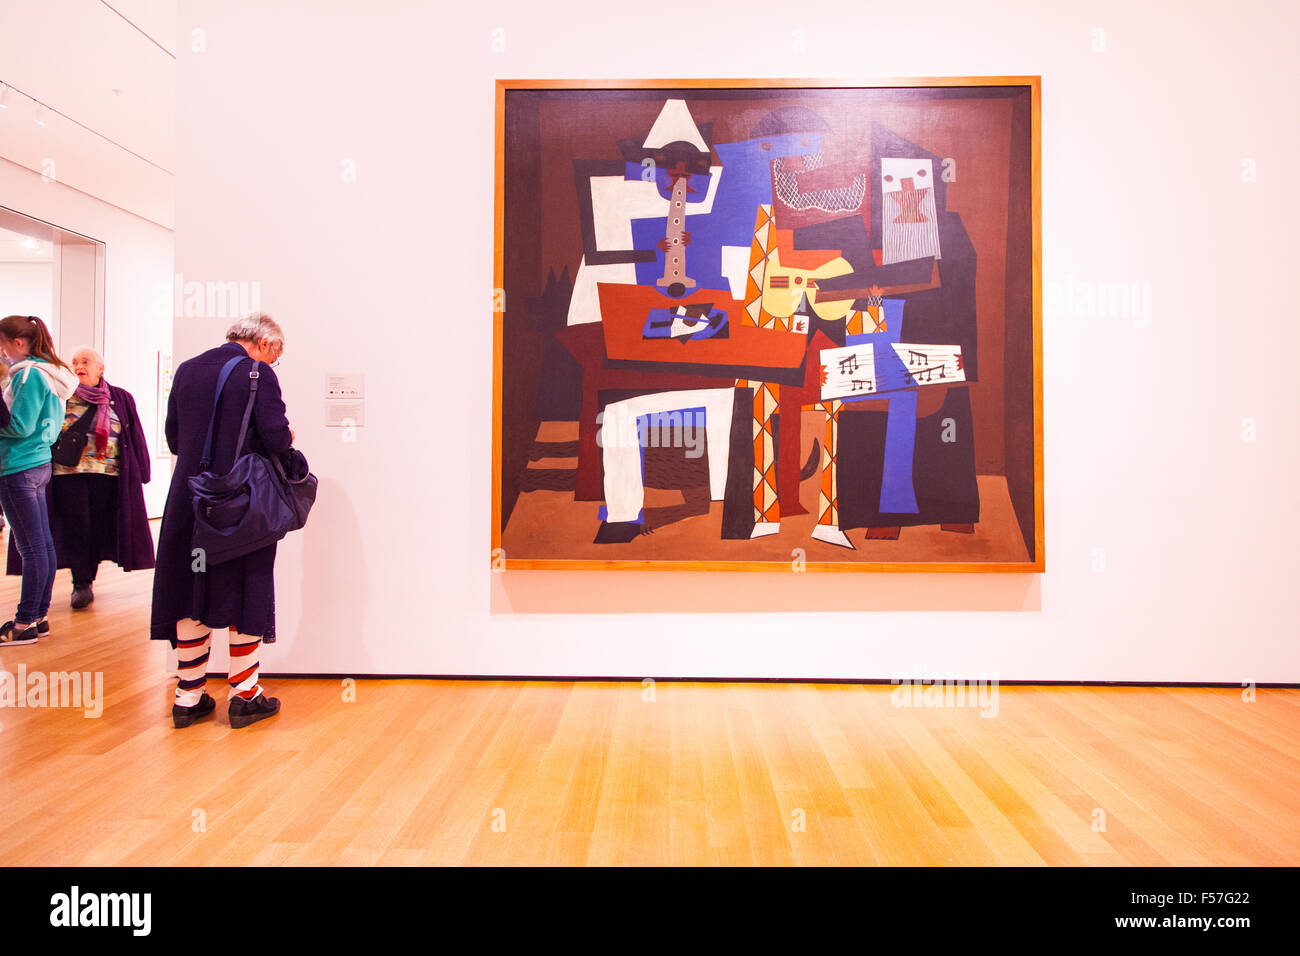 Pablo Picasso At Moma The Museum Of Modern Art Stock